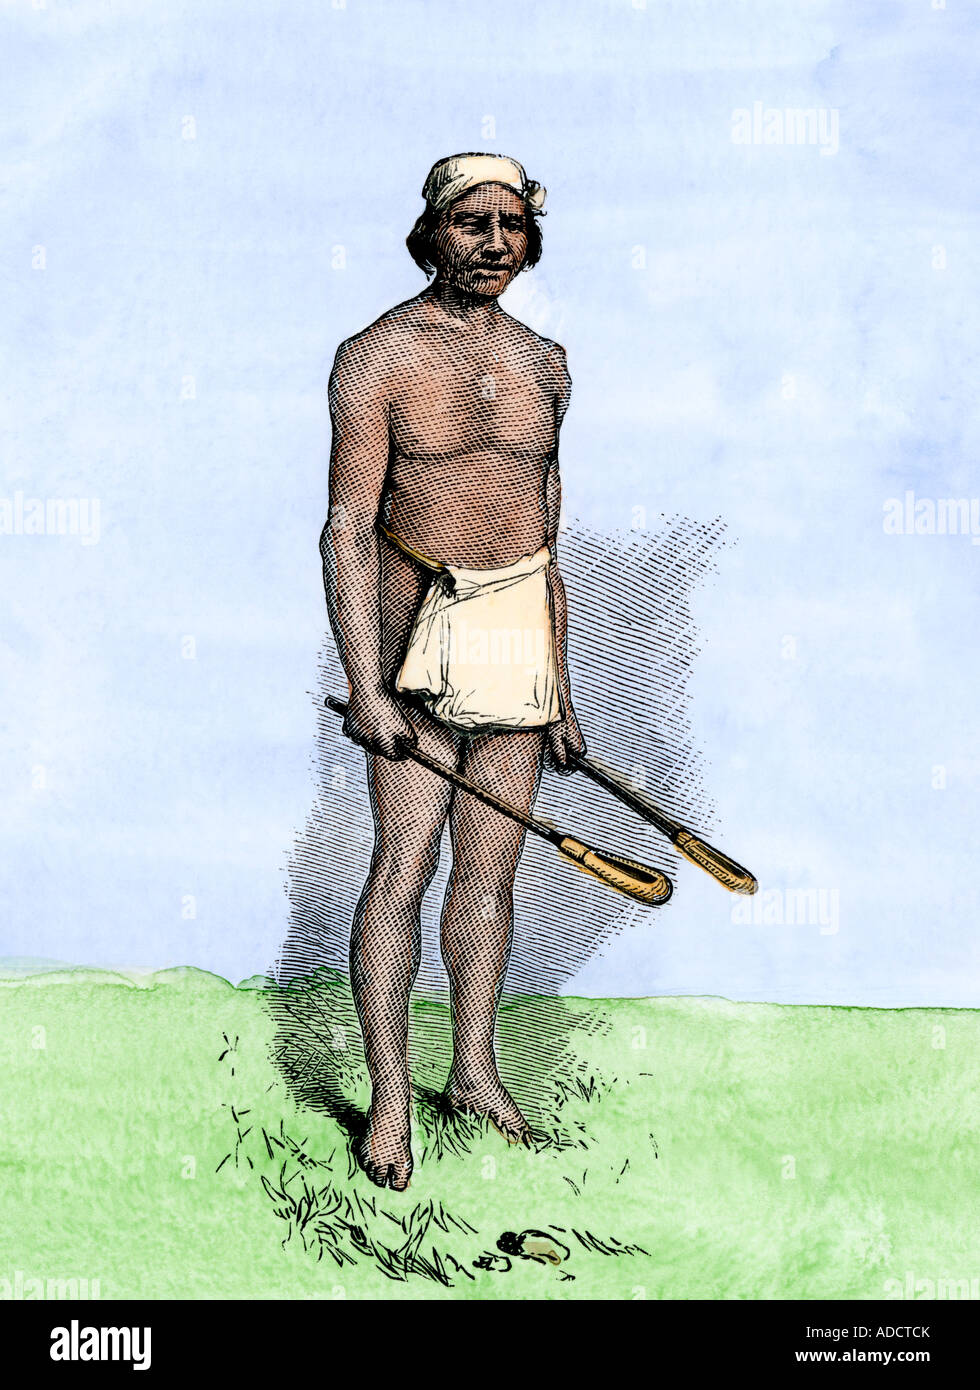 Choctaw Or Creek Ball Player With Native American Lacrosse